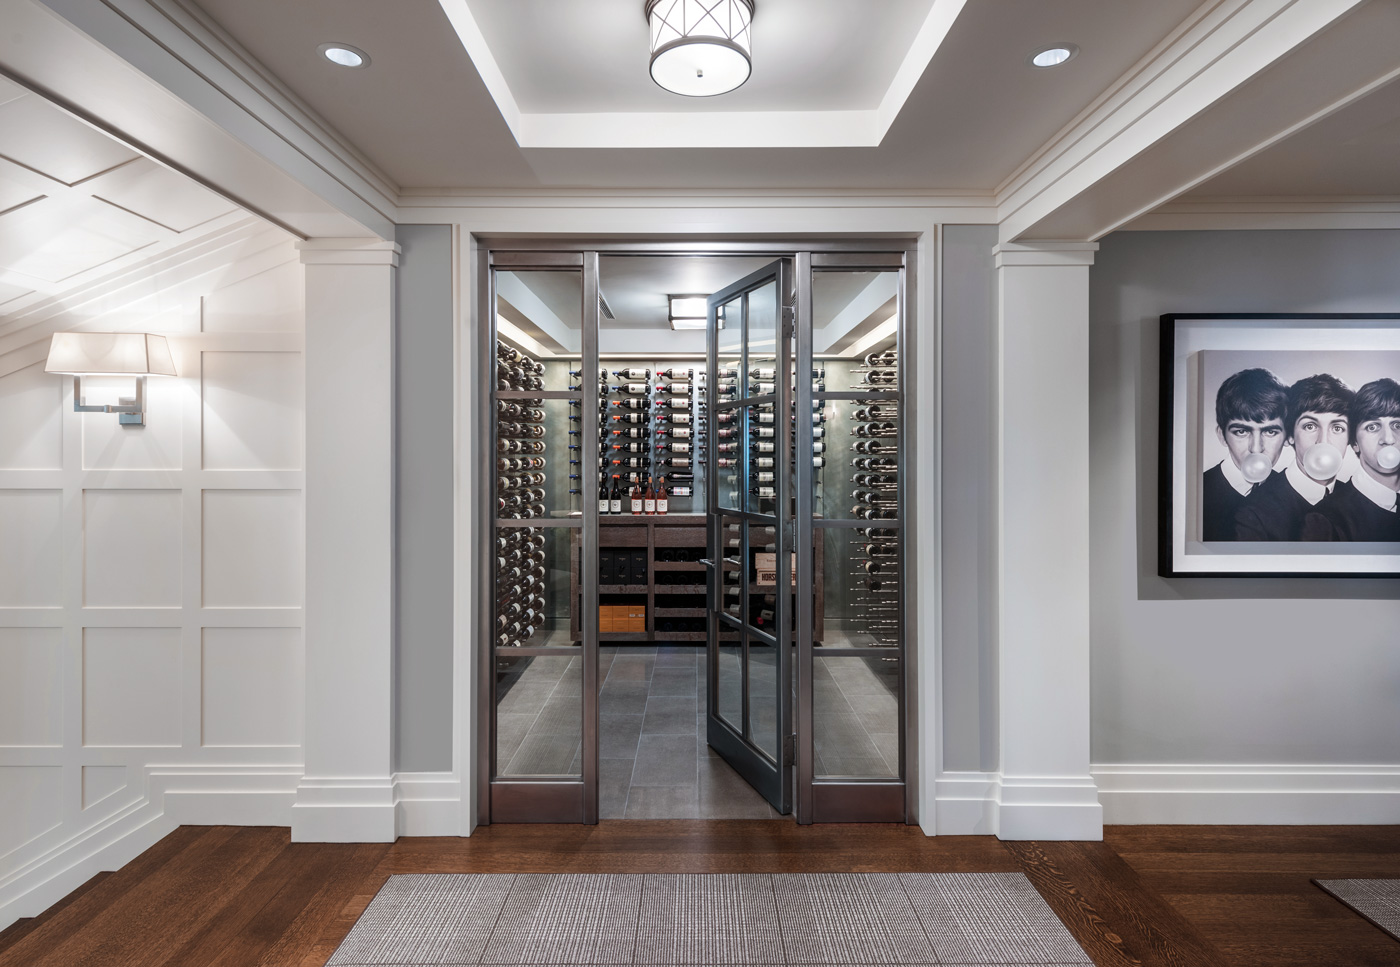 Wine vault for a high-end suburban Boston home designed by MGa | Marcus Gleysteen Architects